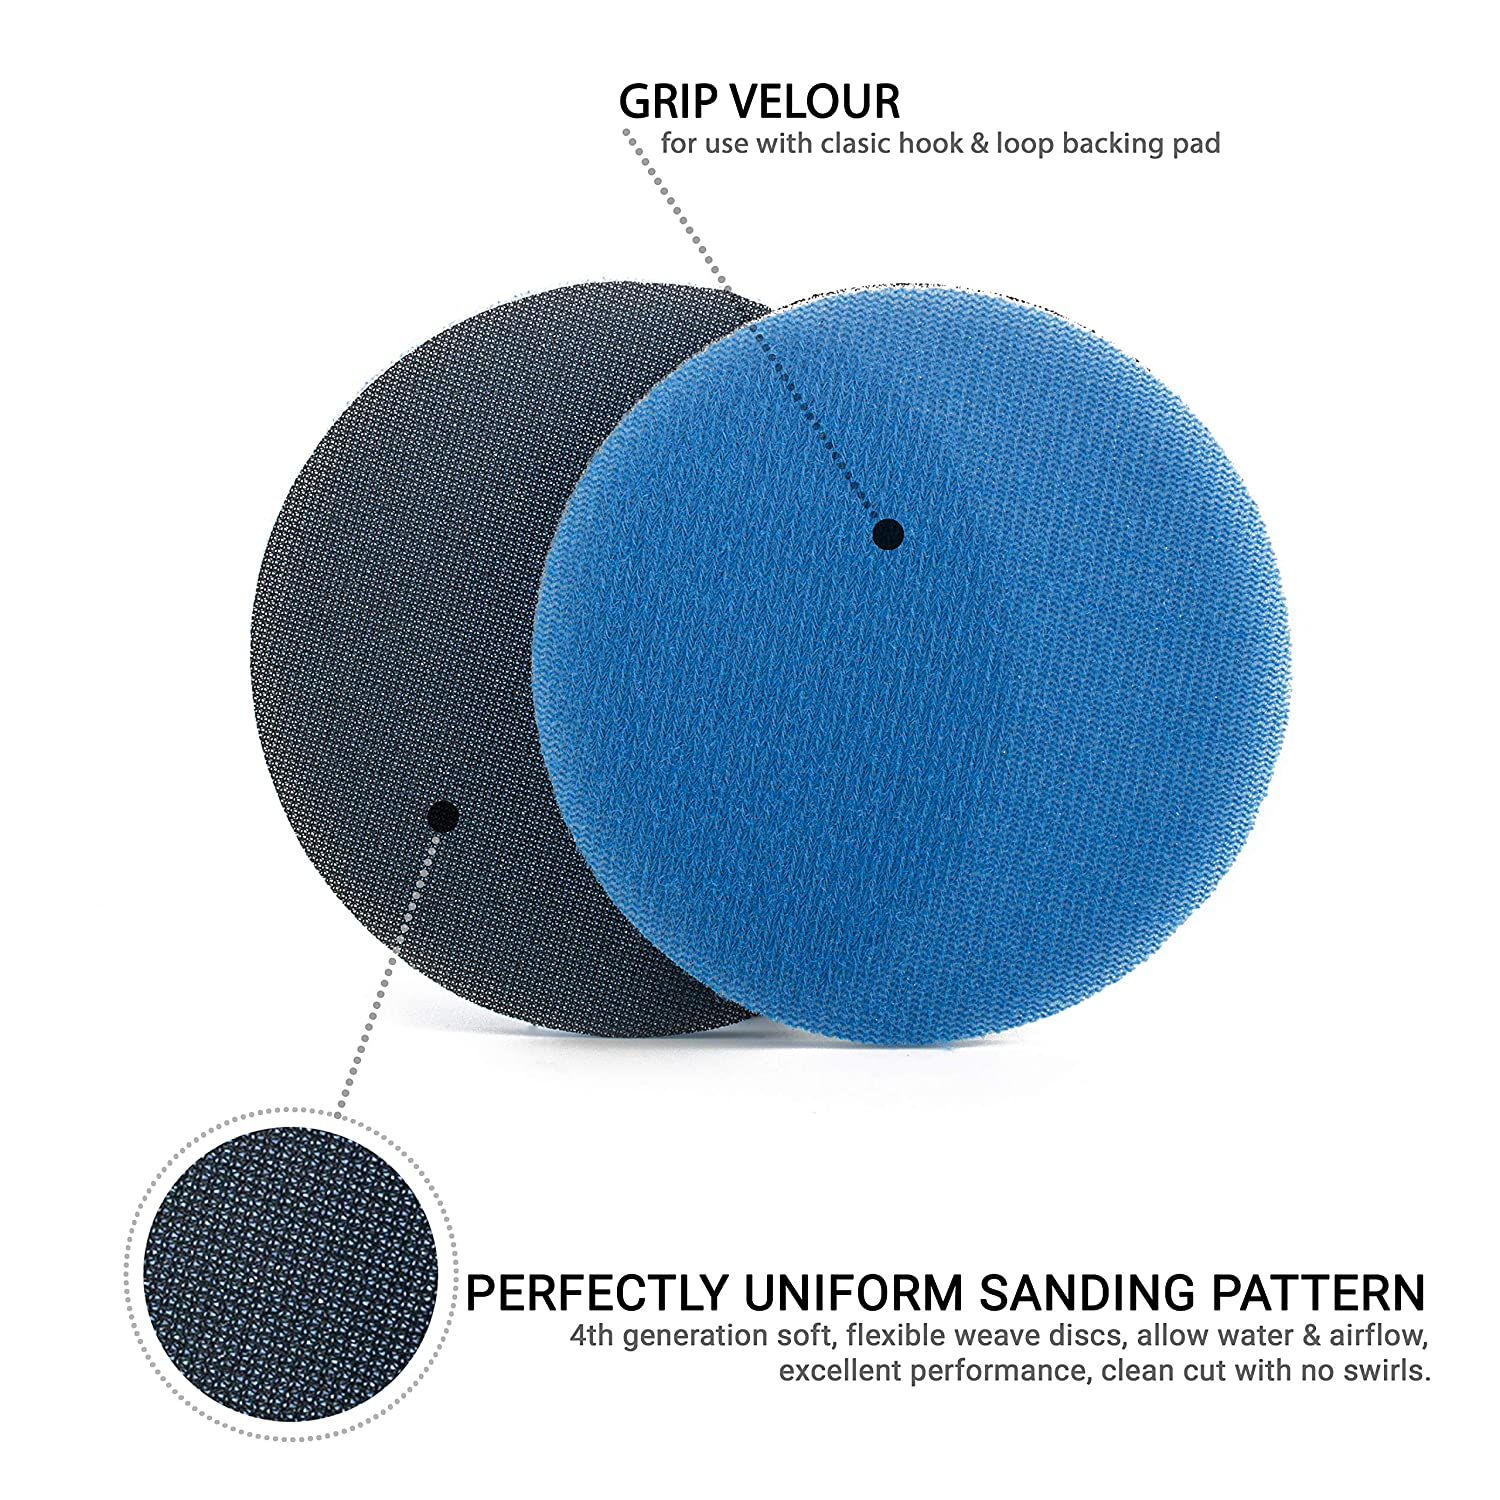 Silicon Carbide Sanding Disc///Ø 5 inch//Pack of 5 Discs GLASS POLISH GP14503 GlasX-120 Medium Grade Abrasive Disc with Hook and Loop